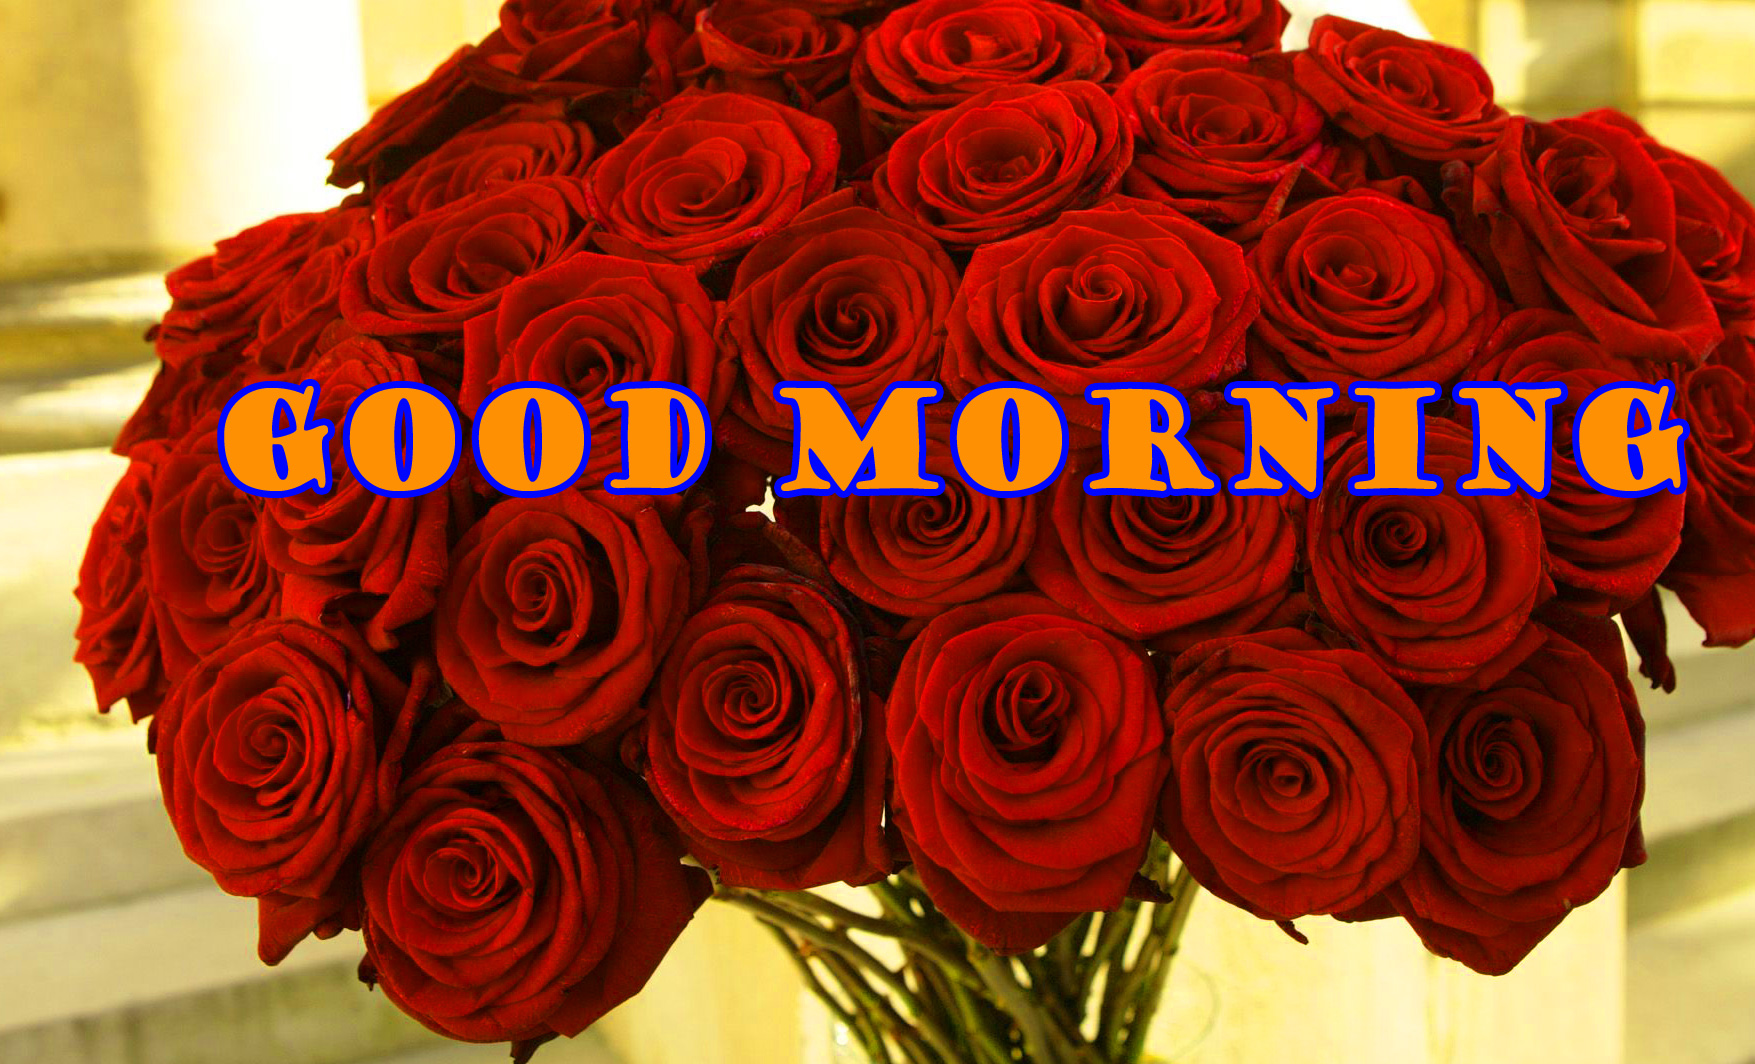 Good Morning Red Rose Wallpaper Photo HD Download